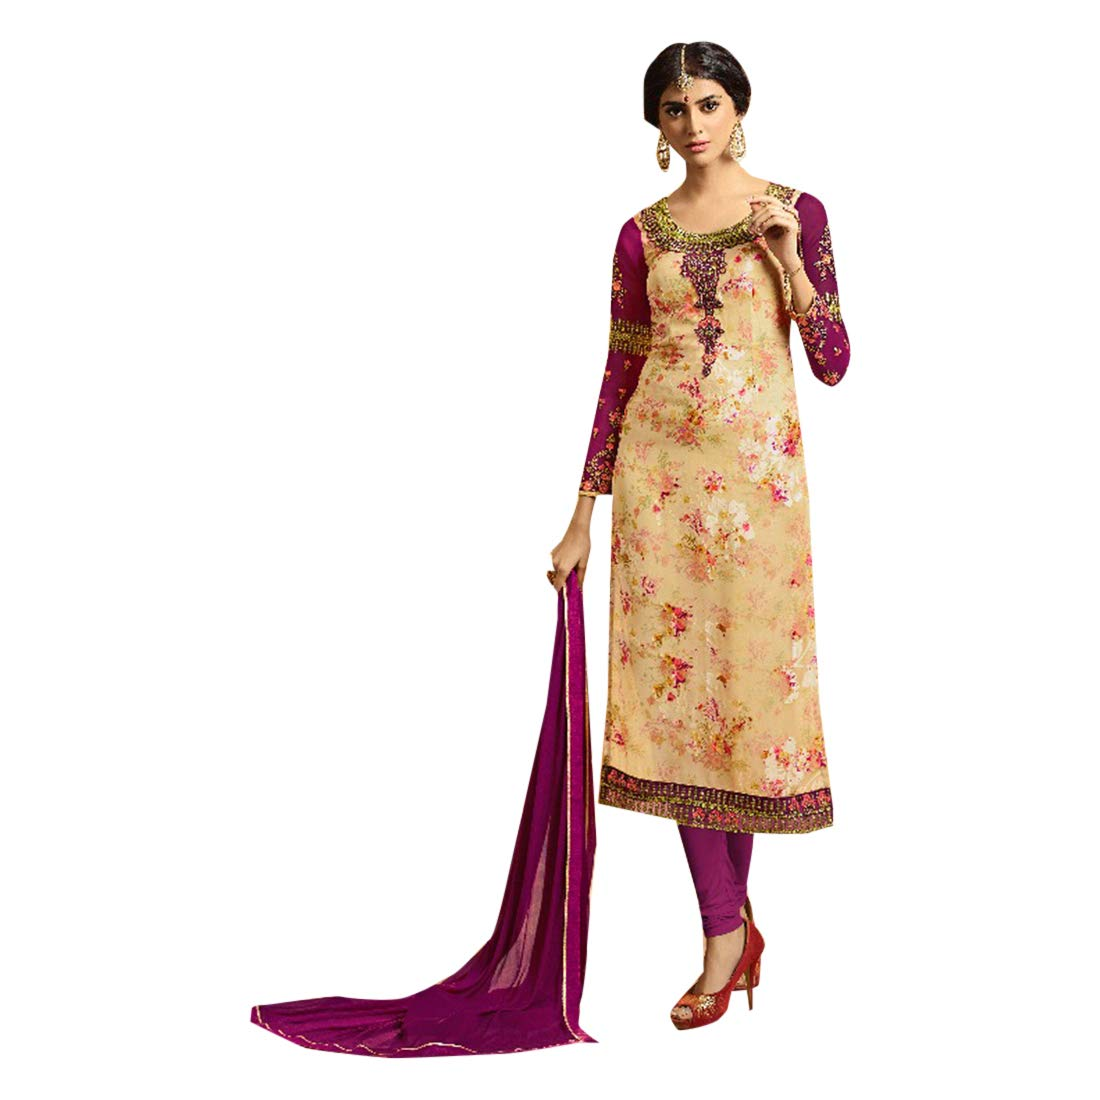 Designer Long Dress Indian Ethnic Salwar Kameez Suit With Dupatta Pajami Style Party Wear 7141